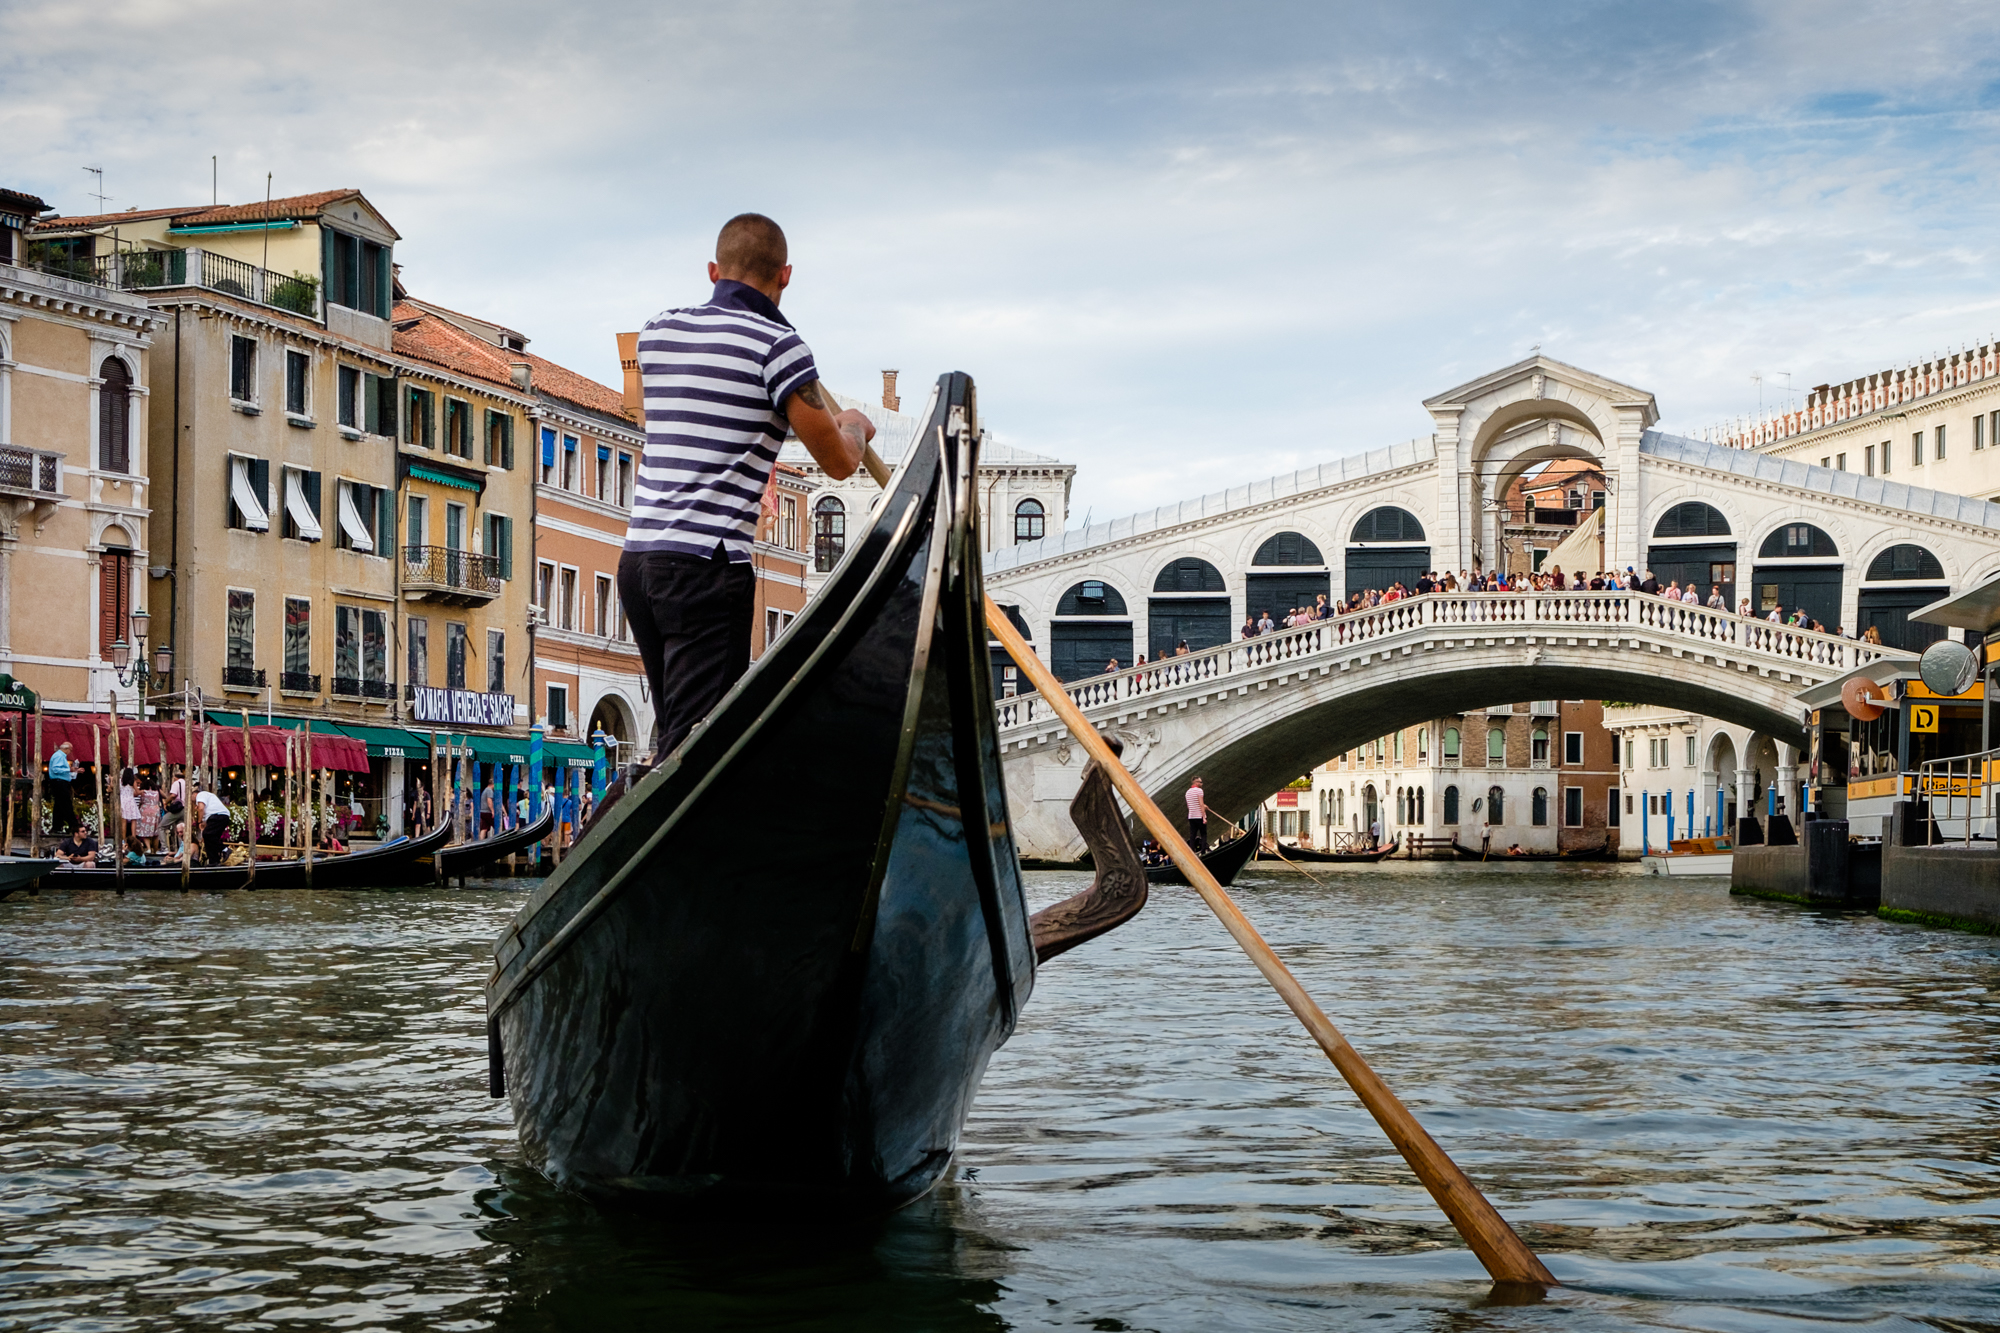 Photo of a gondola and the Rialto Bridge in Venice taken by Trevor Sherwin